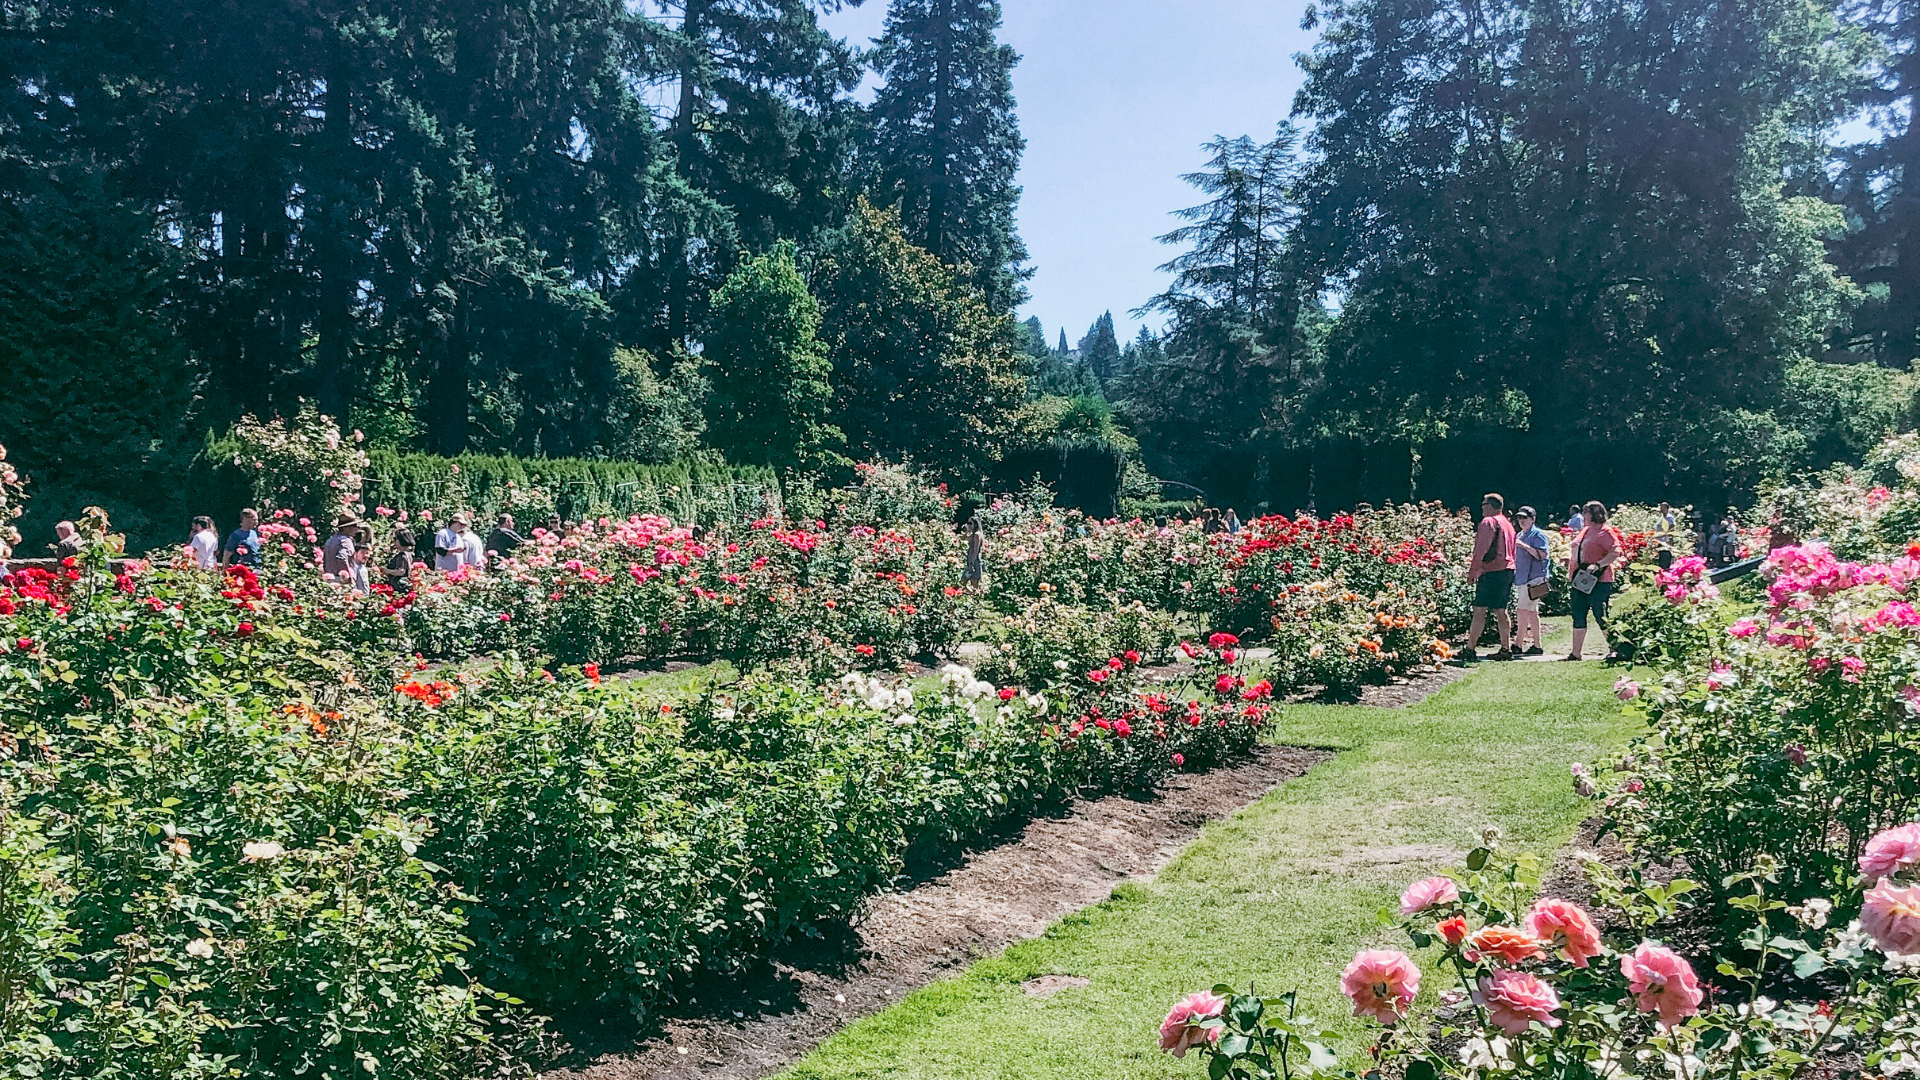 Portland's International Rose Test Garden at Washington Park.